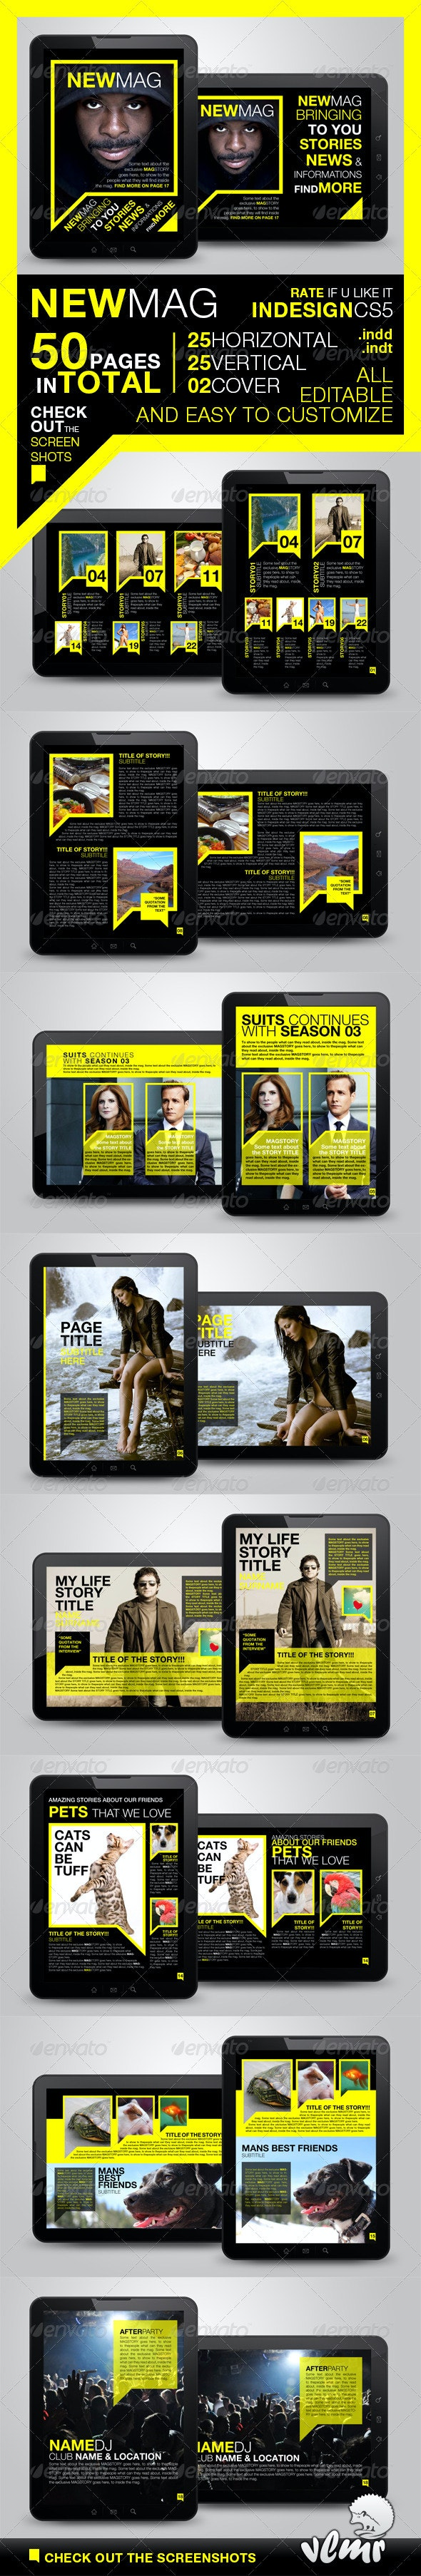 Newmag Tablet Magazine Template - Digital Magazines ePublishing